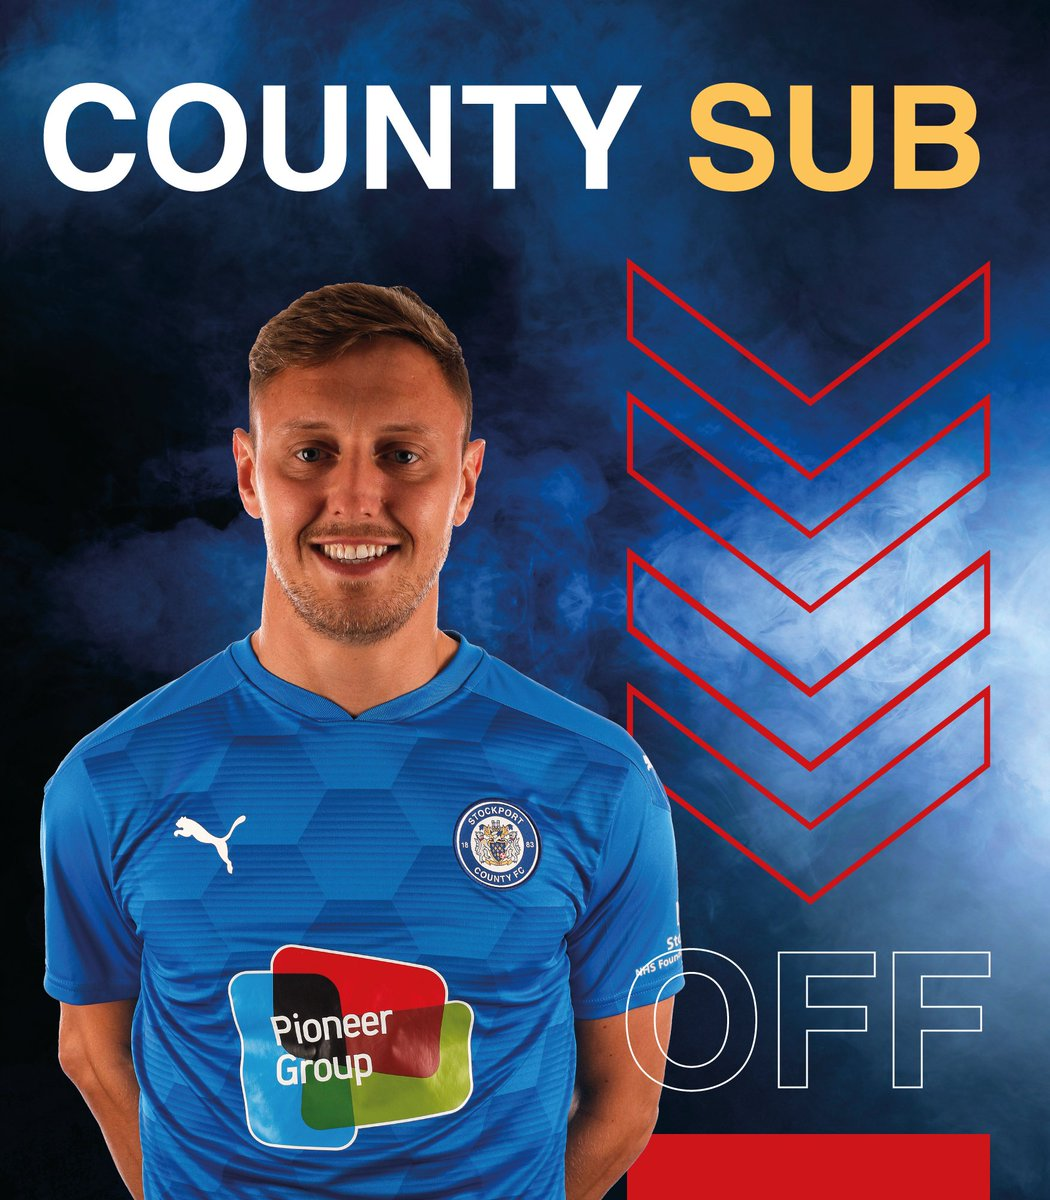 COUNTY SUB (88') | Final change of the night for County, as Connor Jennings replaces Richie Bennett. 0-2.